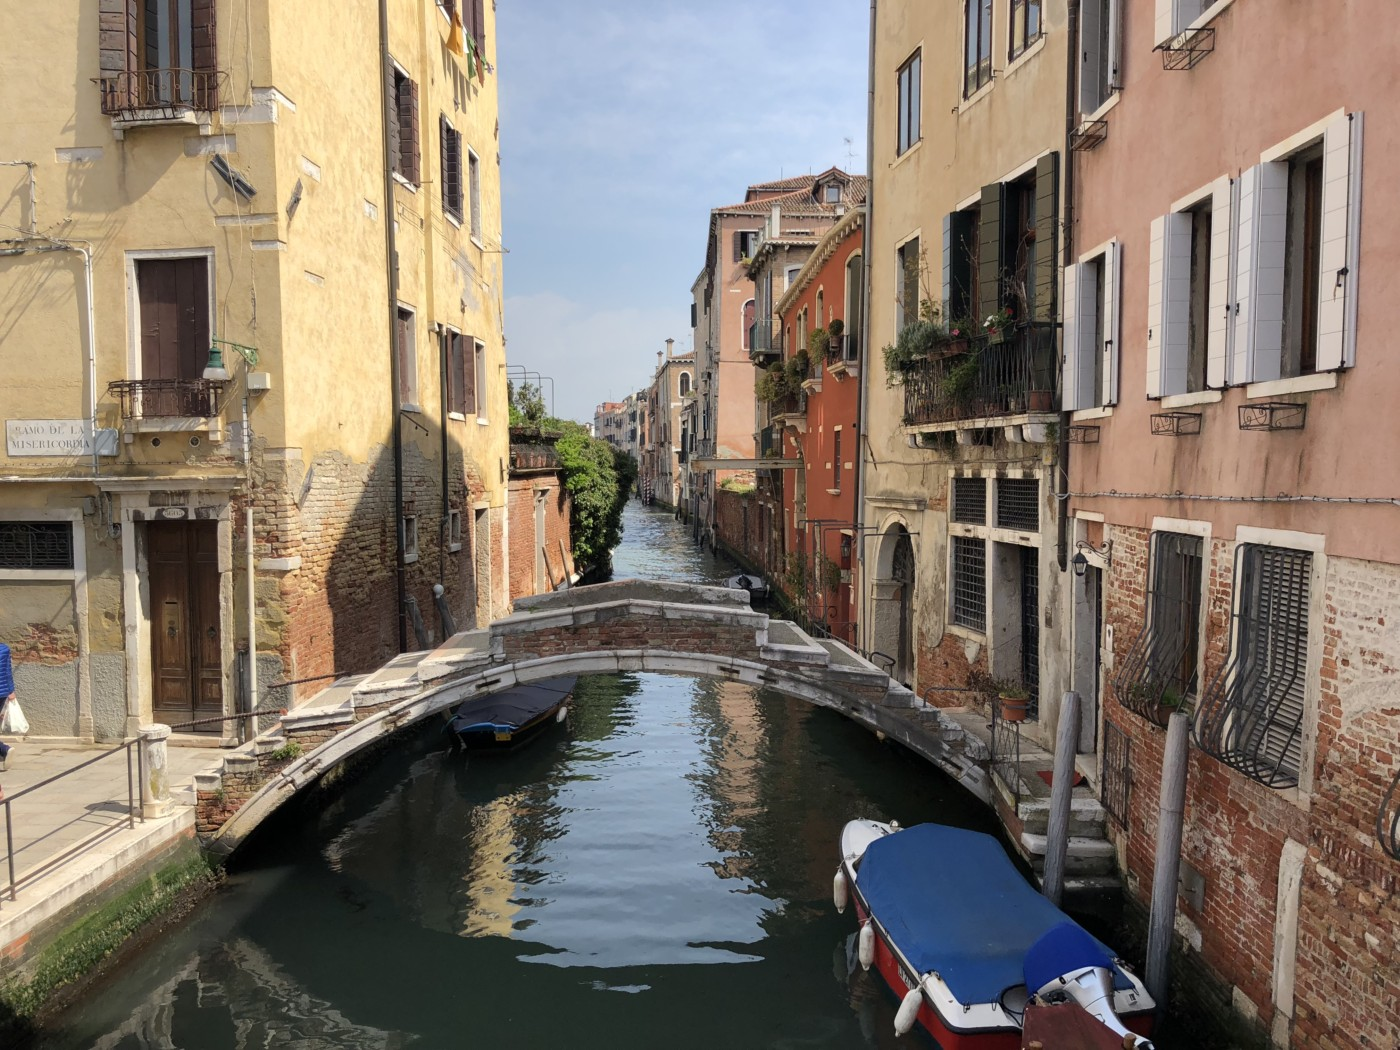 Venice, Italy to ban tourists from certain areas of the city